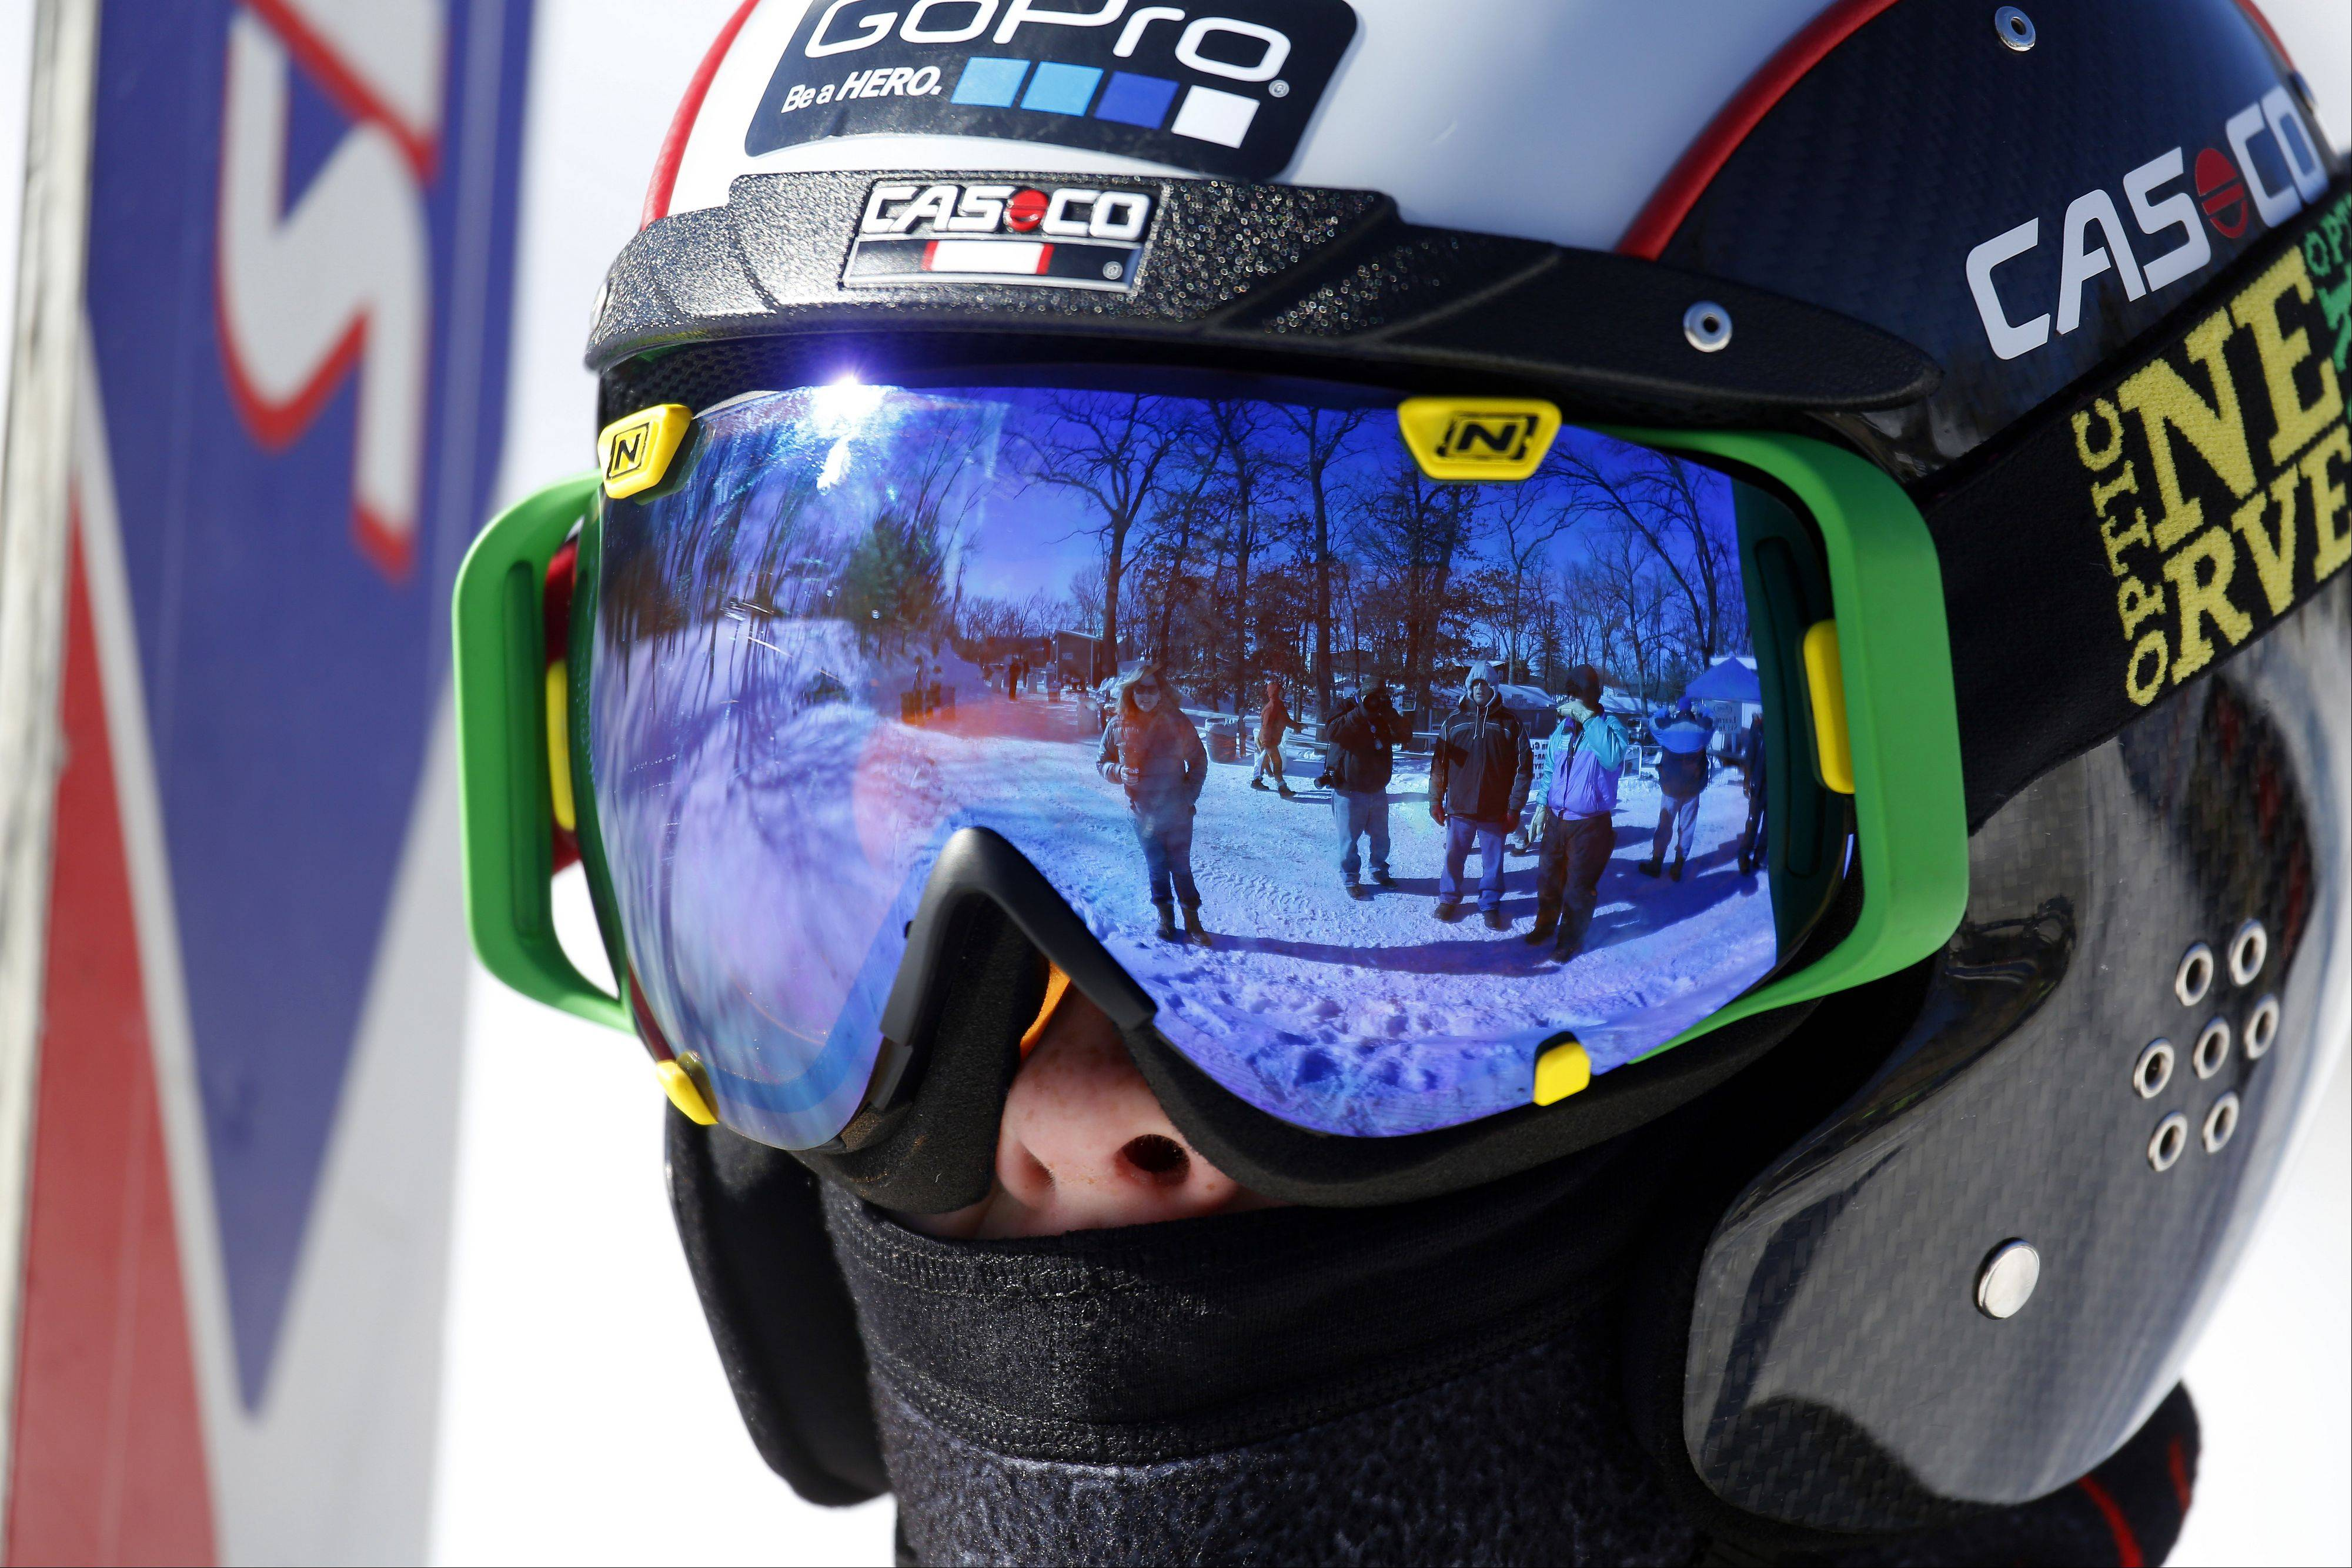 All bundled up for some practice jumps, 10-year-old Matt Smith, of Cary, prepares for the next run during the 109th Norge Ski Jump Tournament Saturday in Fox River Grove.